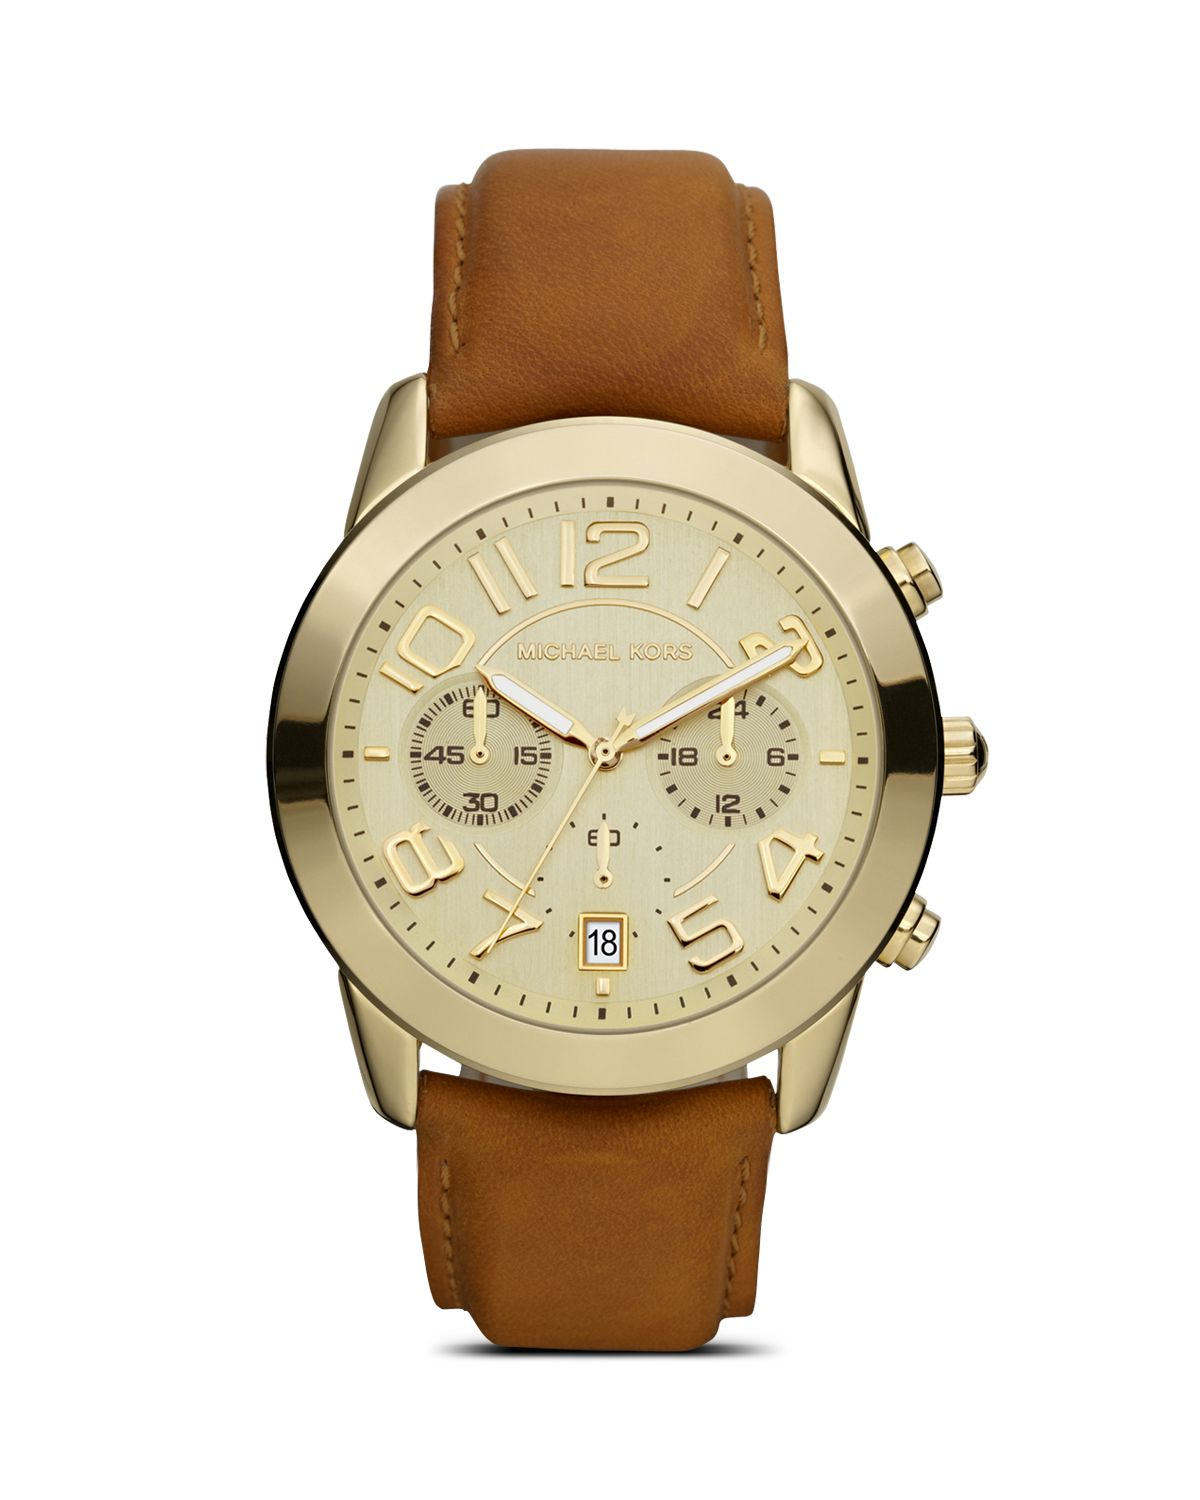 94f14b0b8 Michael Kors Ladies Shiny Gold Watch On Leather Strap in Metallic - Lyst